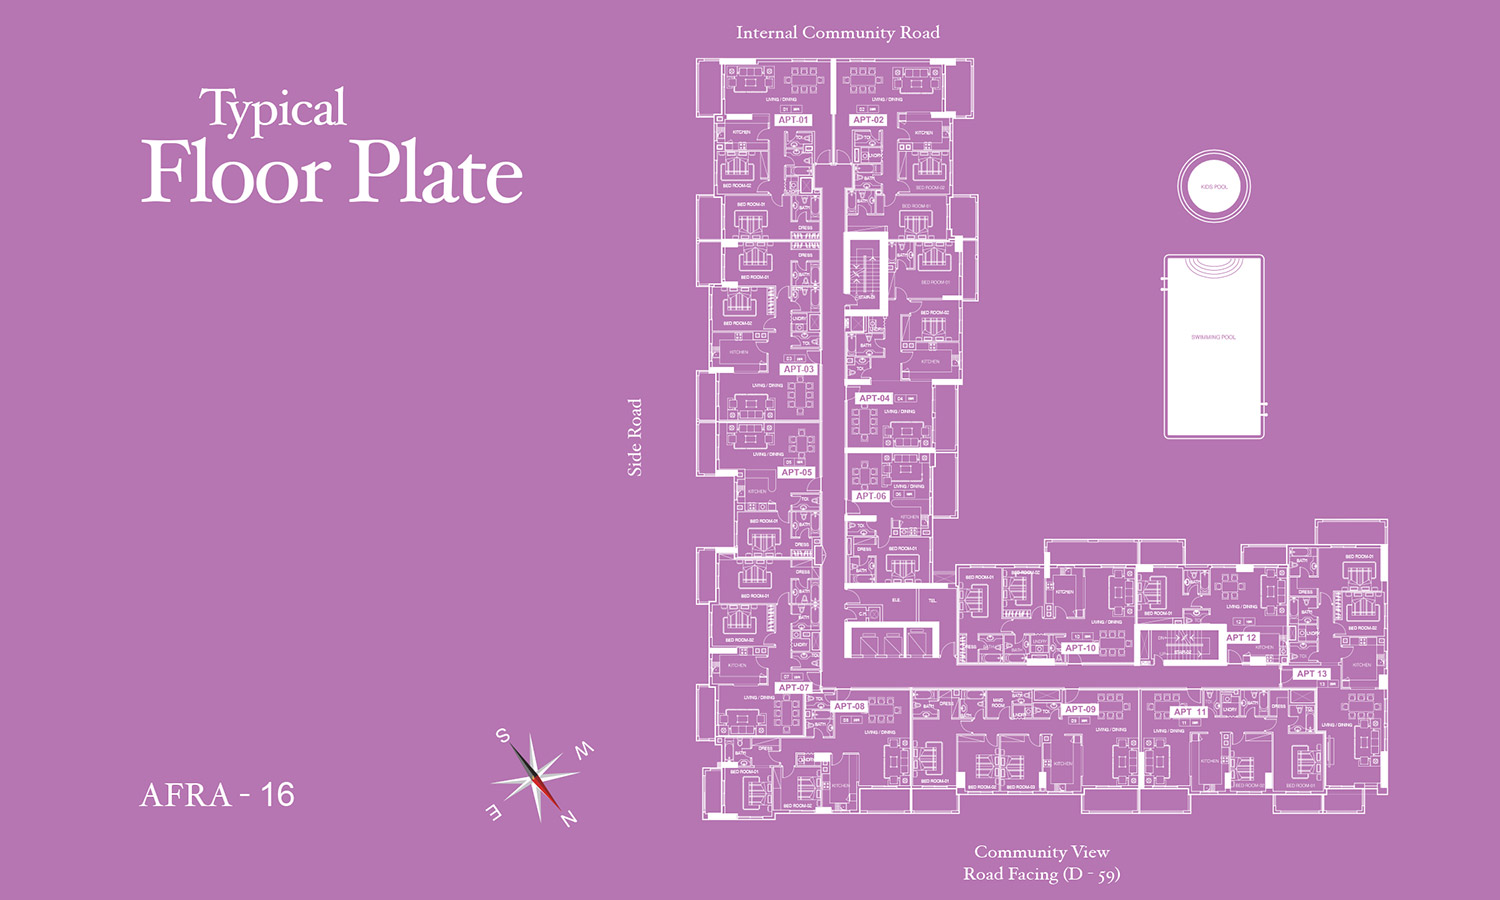 Typical Floor Plate